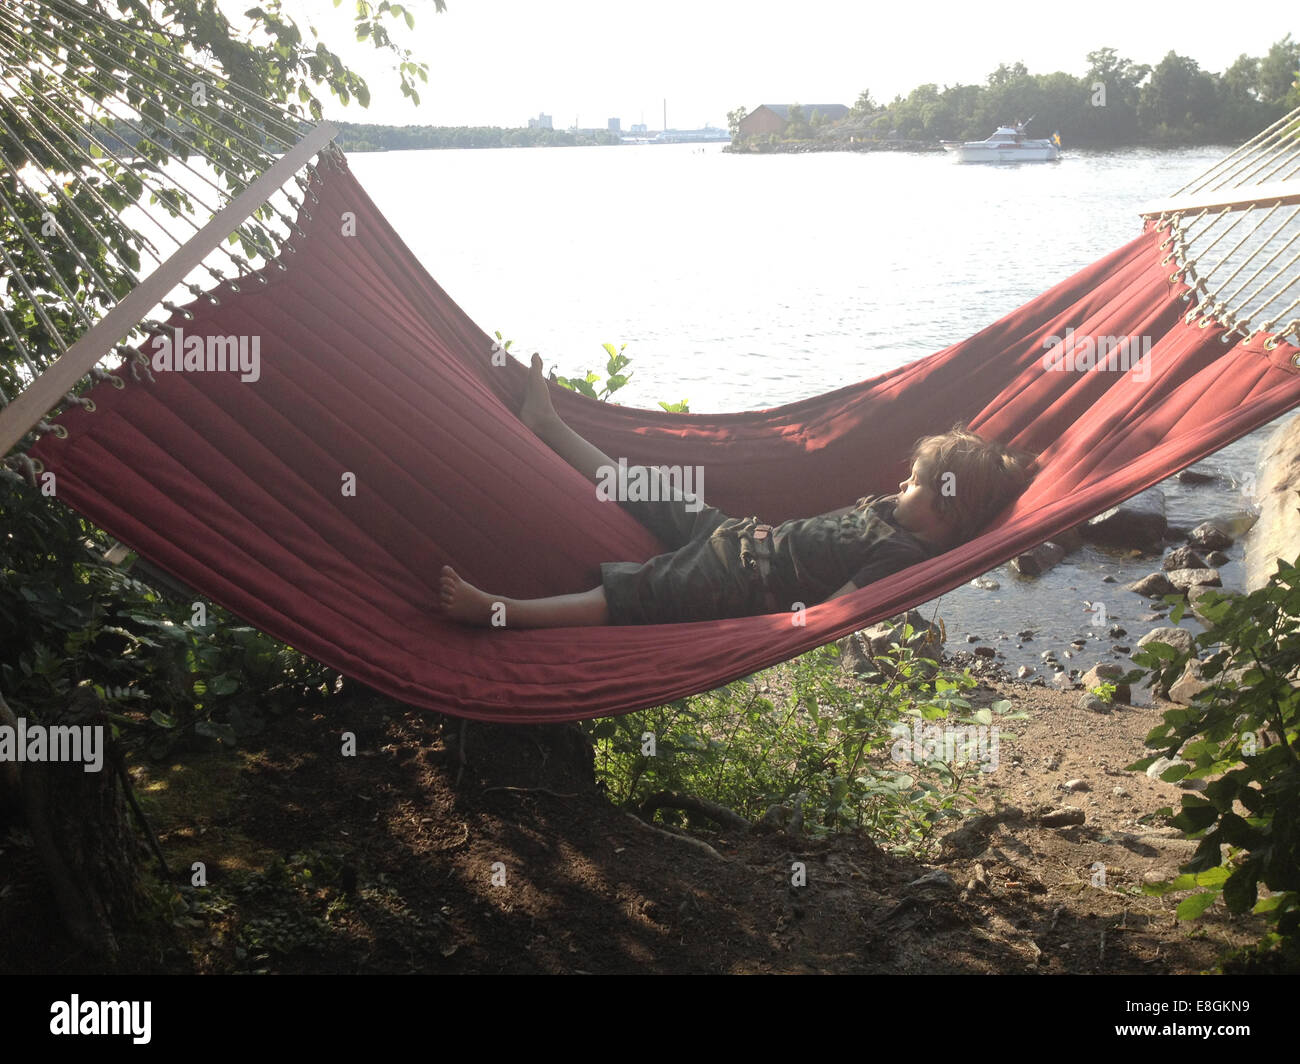 Little Boy Resting In Hammock On A Beautiful Summer Day By The Water - Stock Image